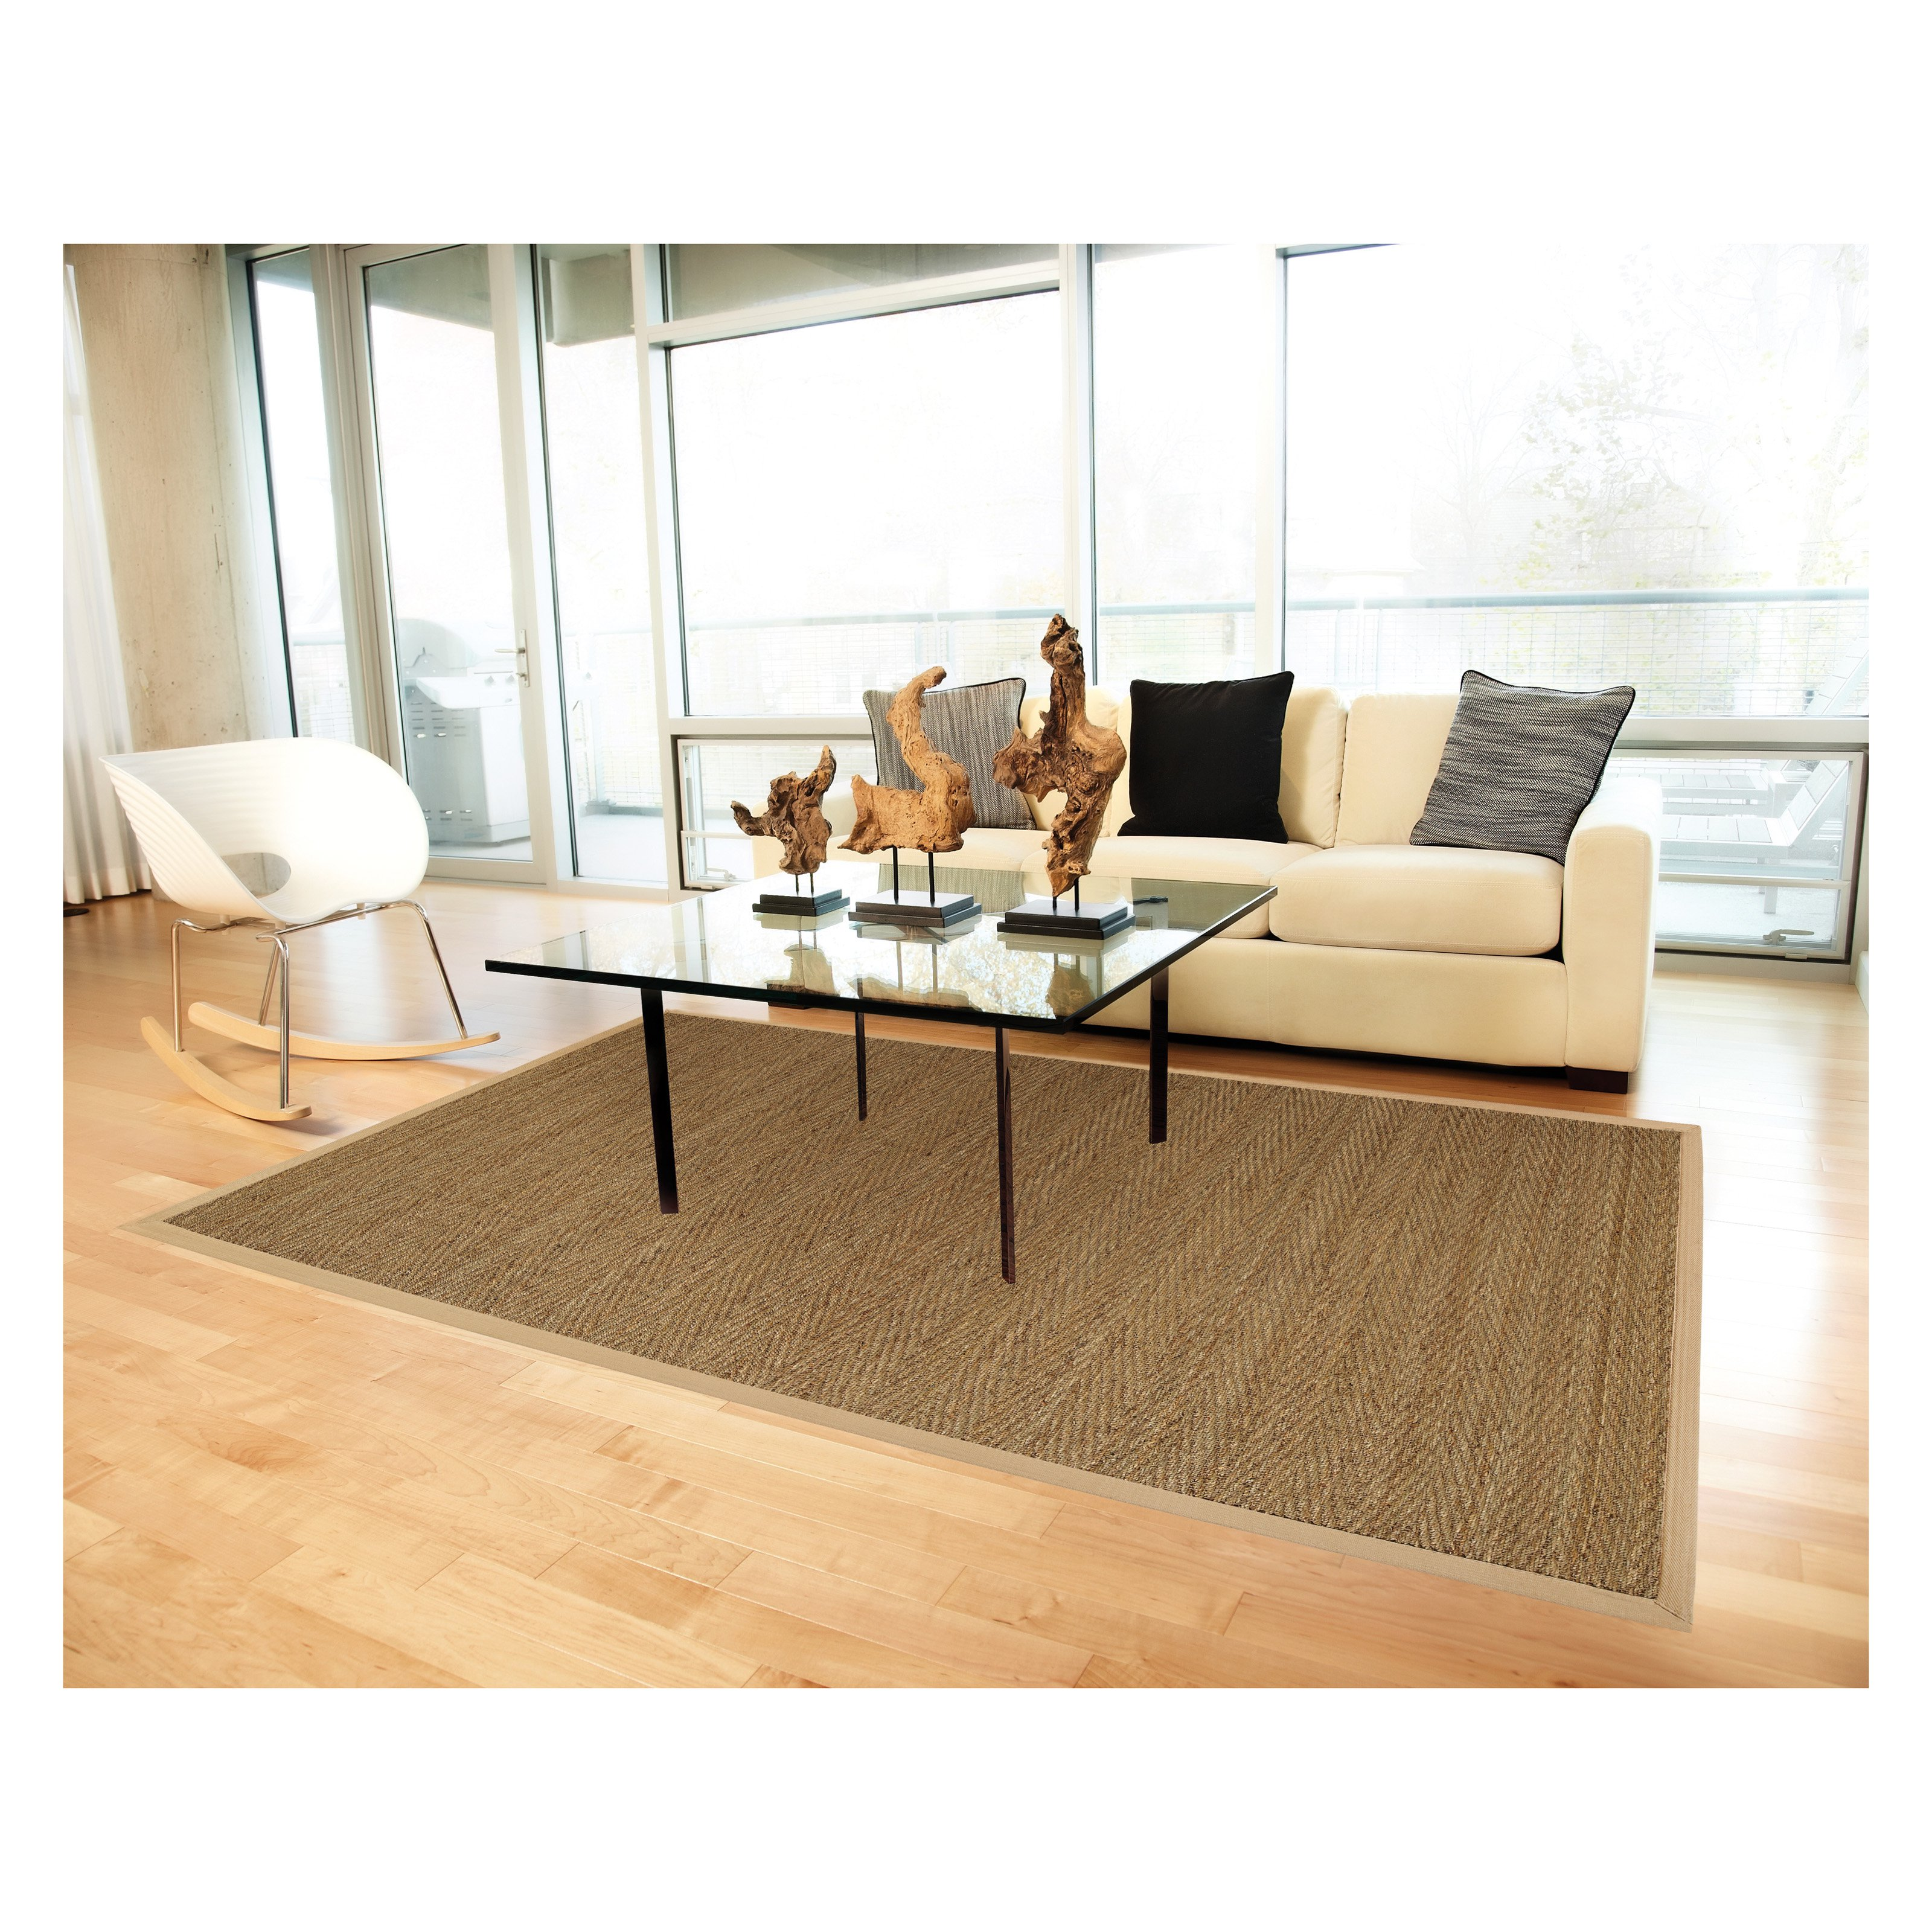 Anji Mountain Seagrass Saddleback Seagrass Rug - (5 Feet x 8 Feet)